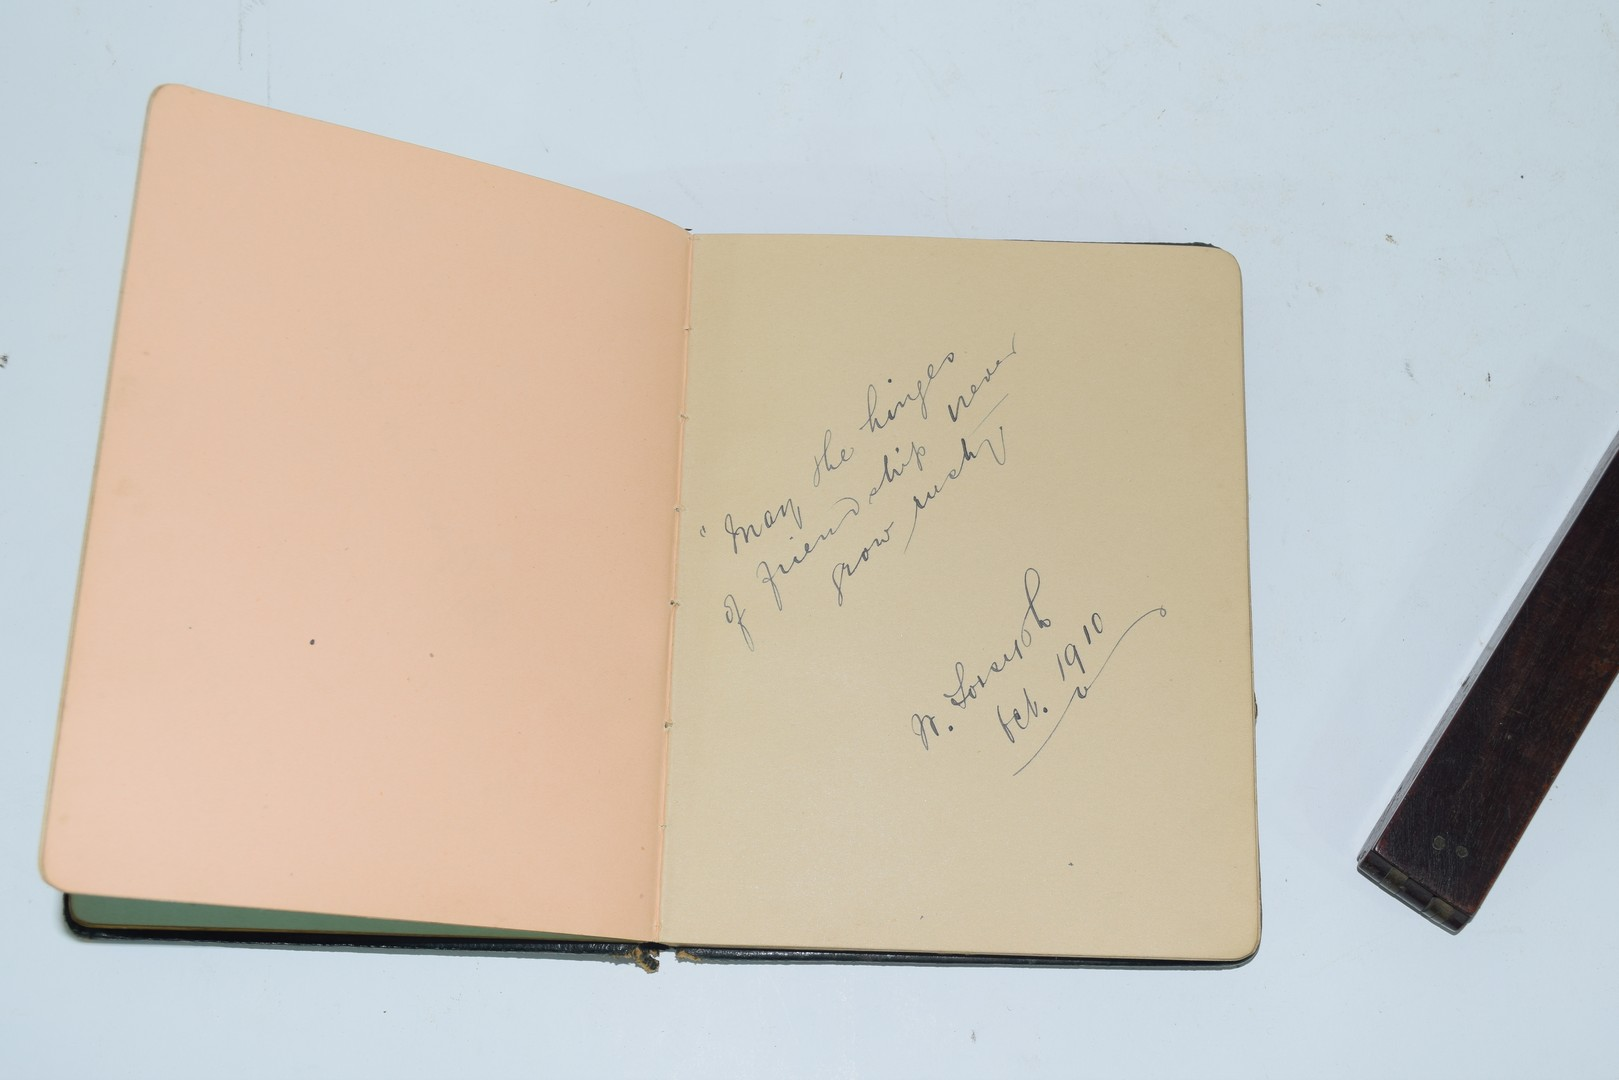 Early 20th century autograph book - Image 5 of 8